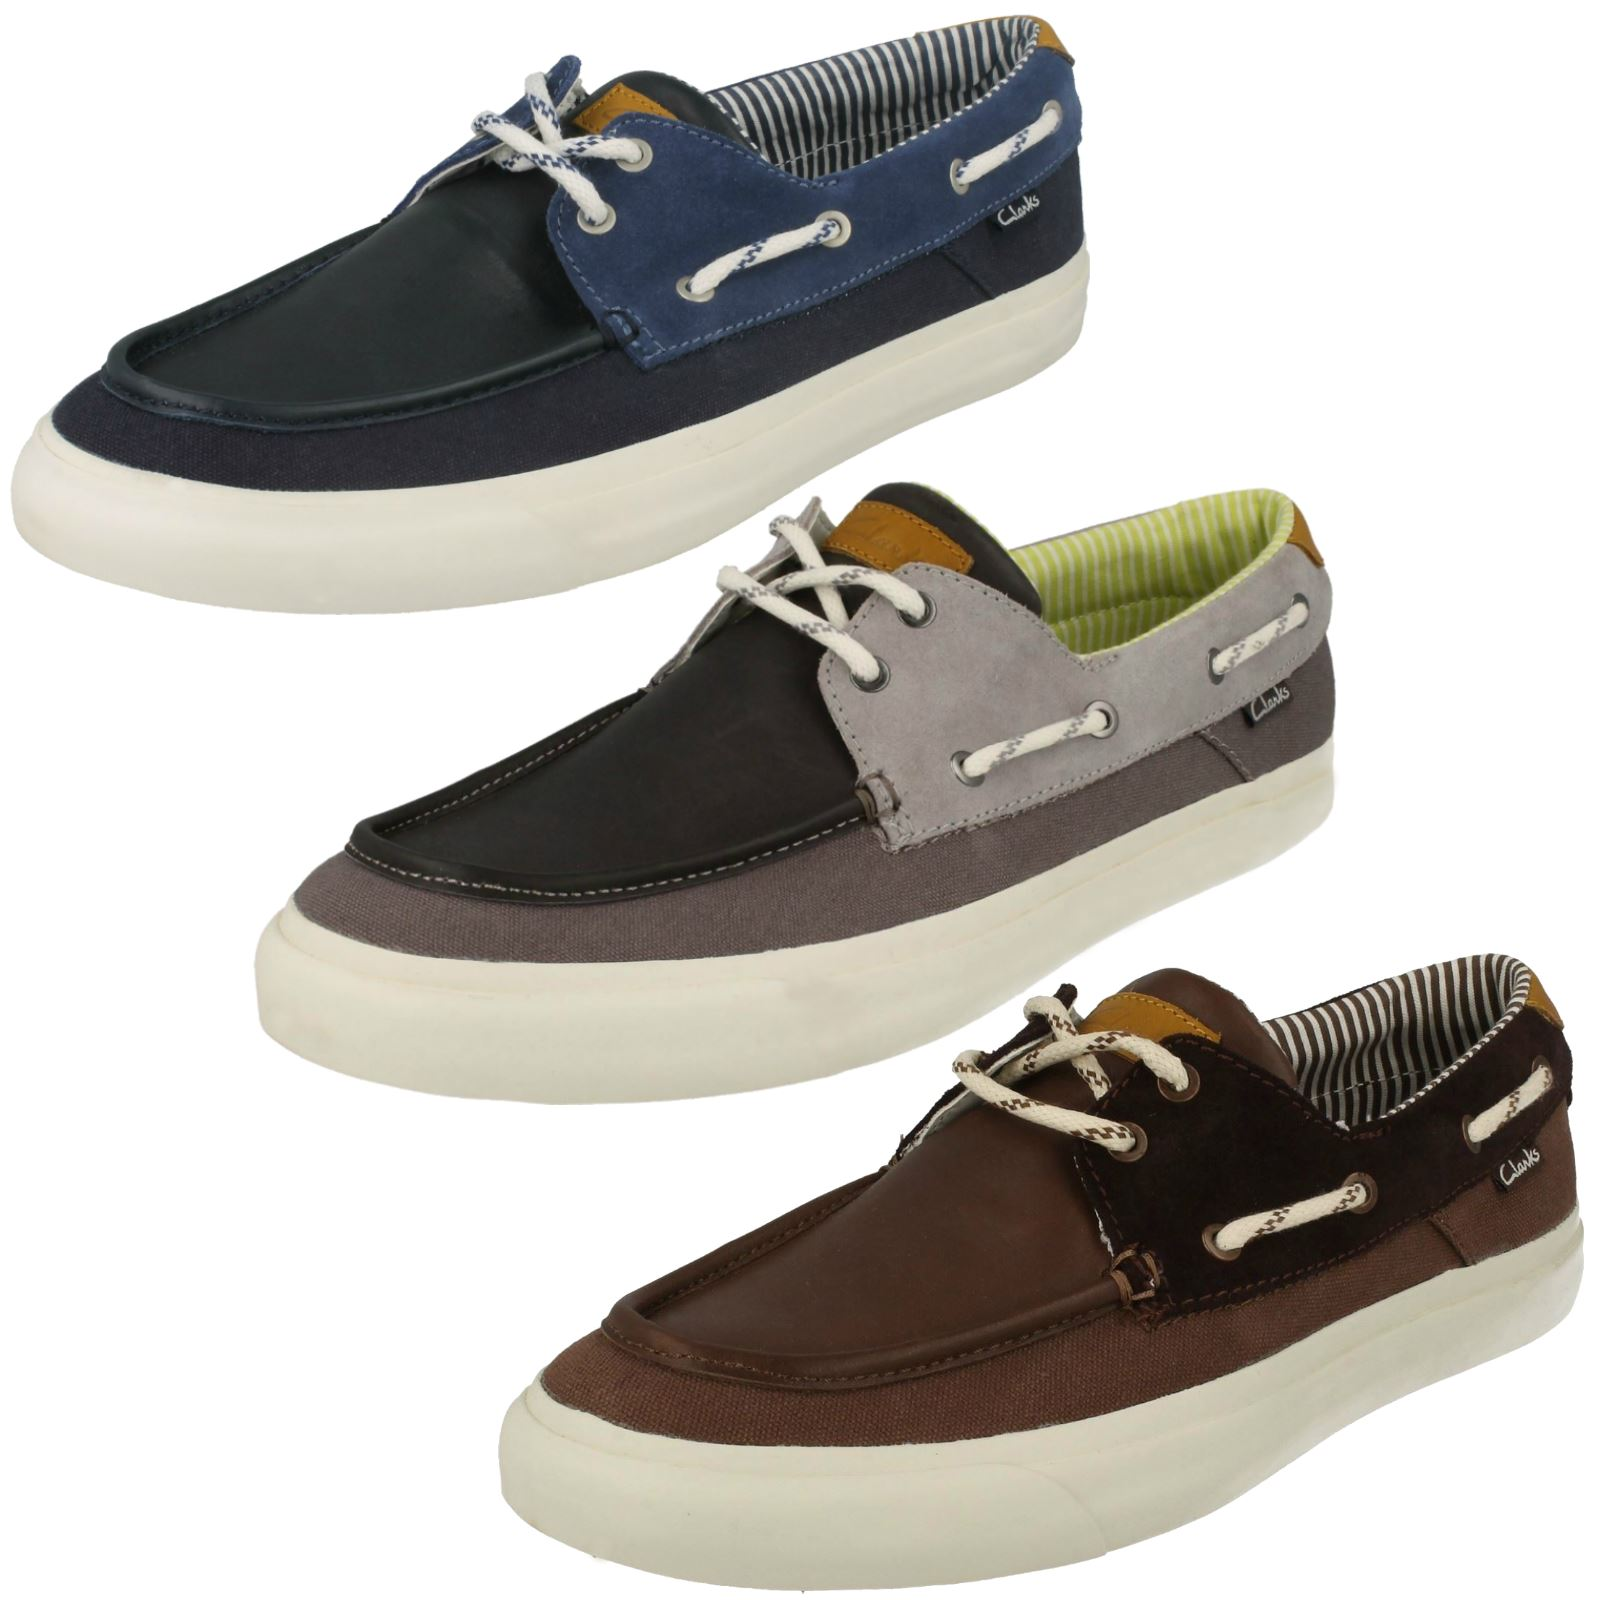 homme clarks toile à Lacets Chaussures Sport Style - Sulley Ollie RDR1l